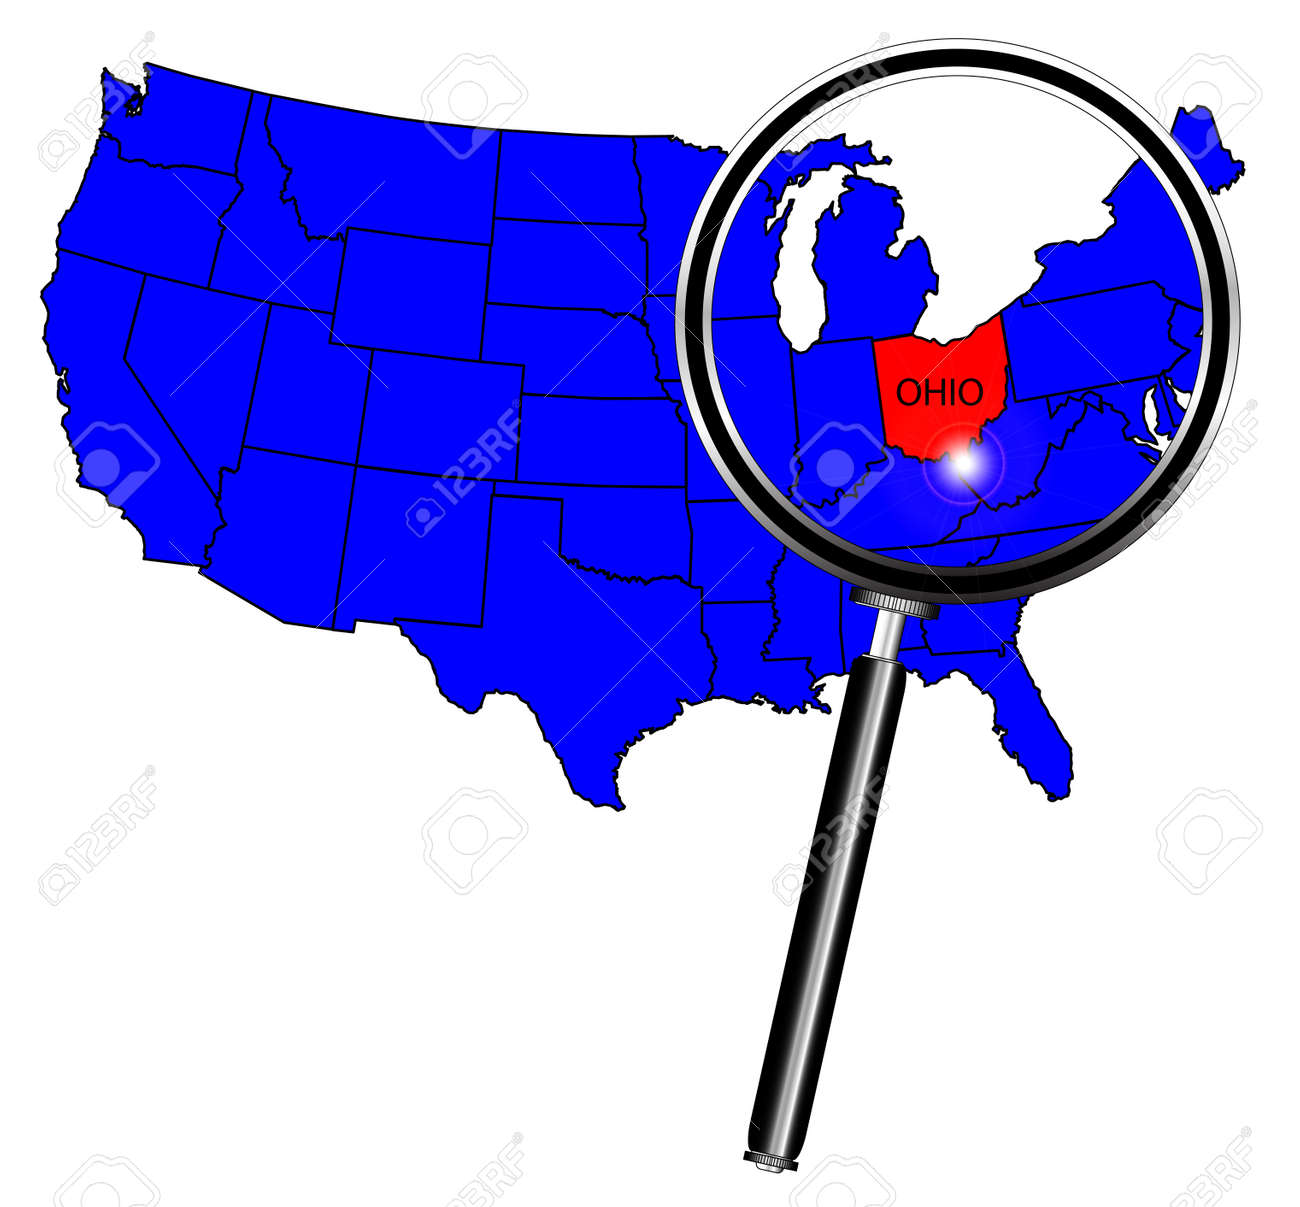 Ohio State Outline Insetinto A Map Of The United States Of America - Us map ohio state